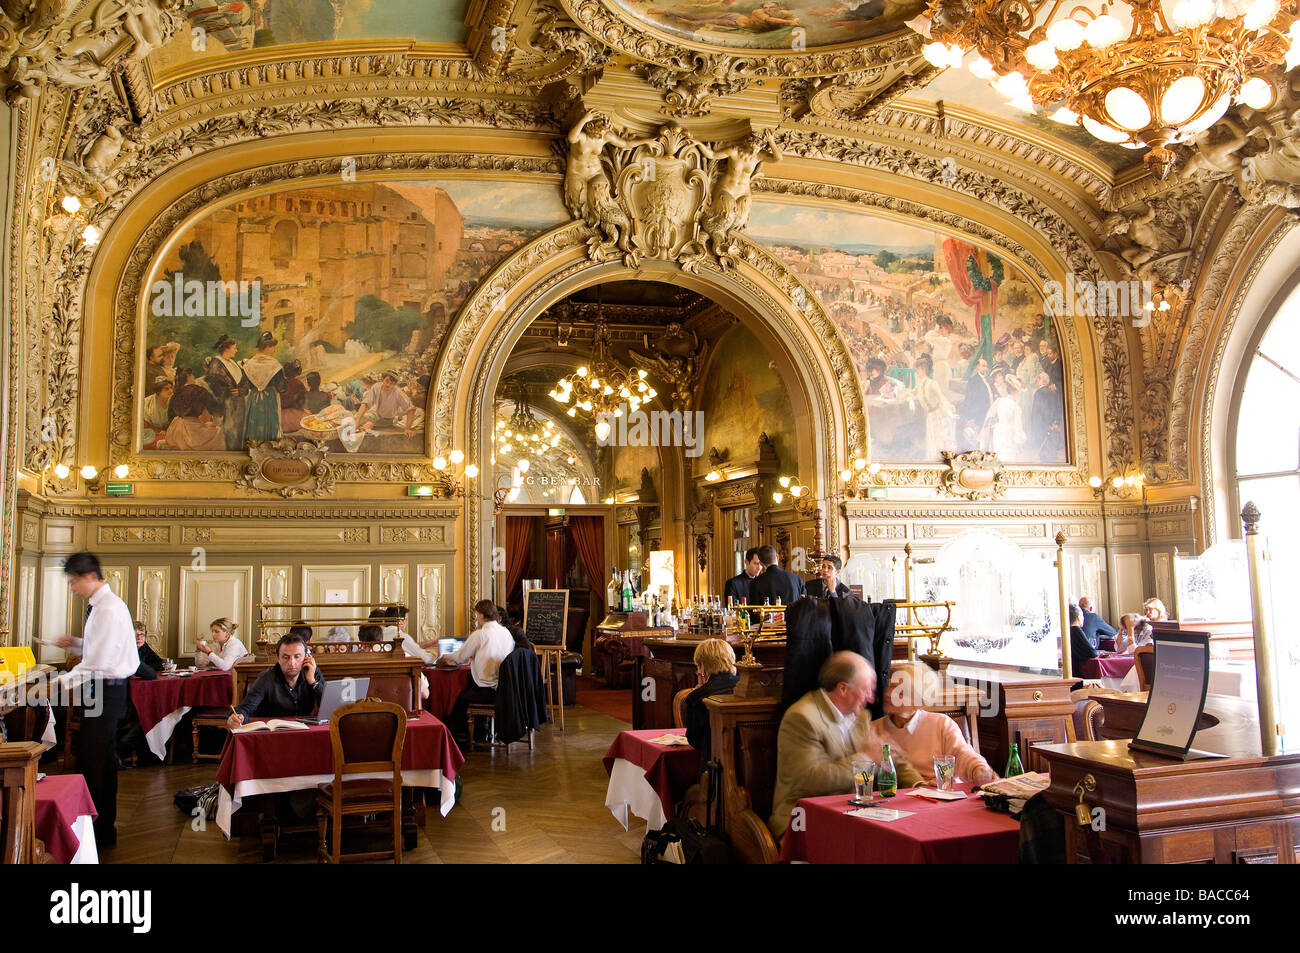 Souvent France, Paris, Gare de Lyon, Le Train Bleu Restaurant Stock Photo  KY01